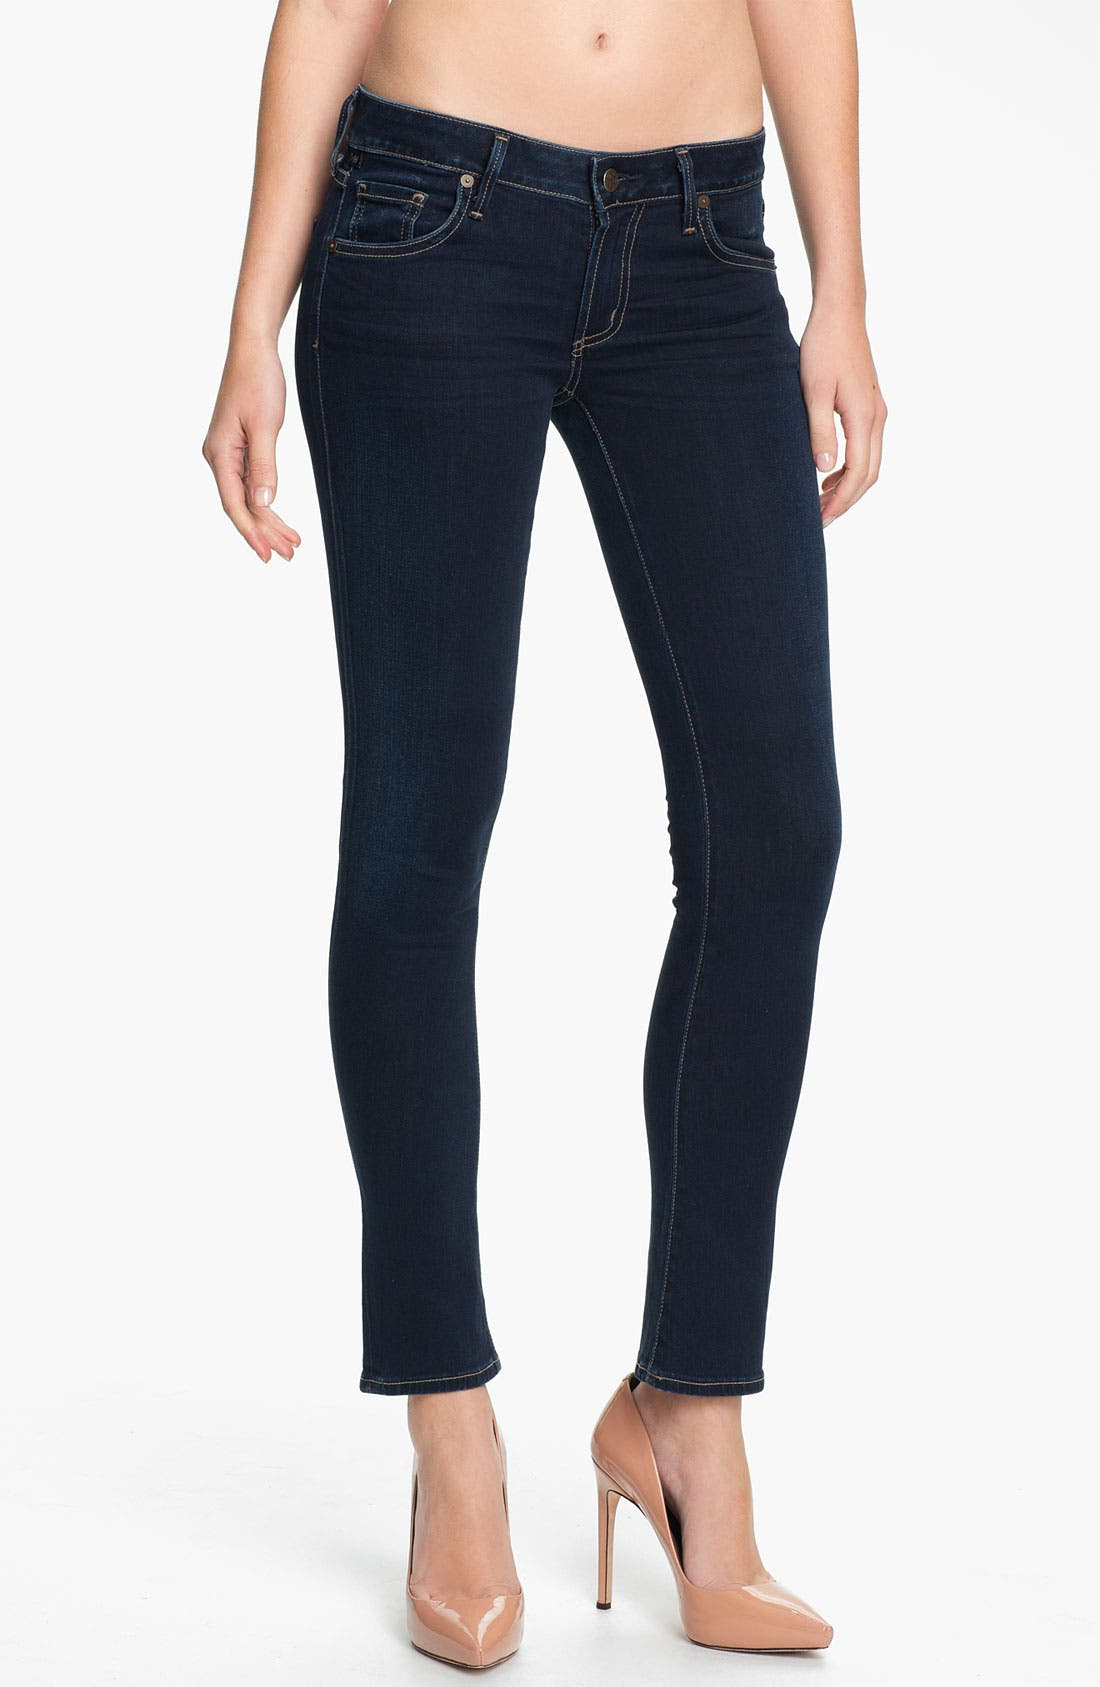 Main Image - Citizens of Humanity 'Racer' Crop Skinny Jeans (Starry)